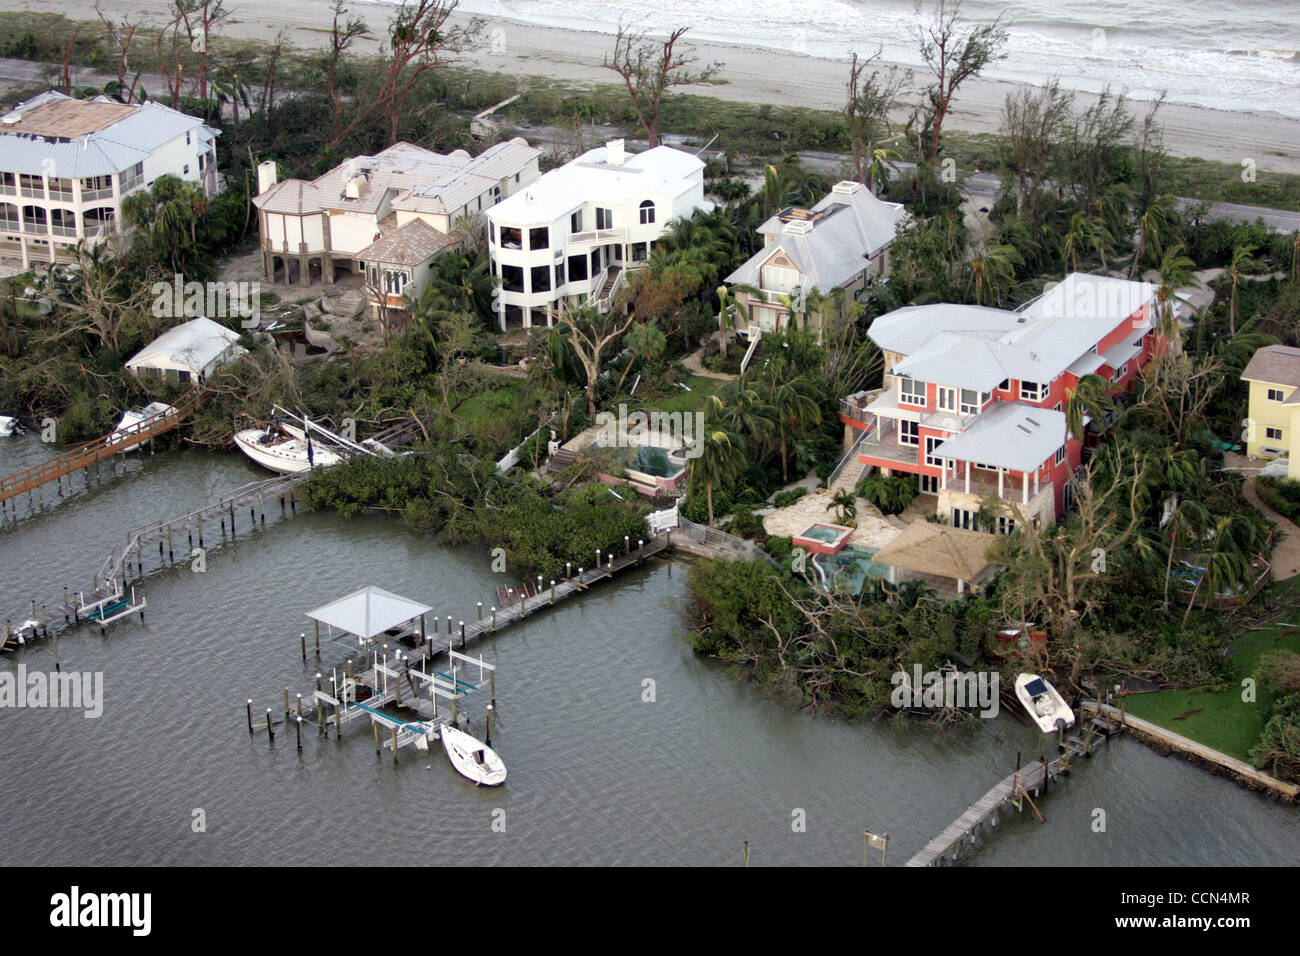 081404 Captiva Island...Homes on Captiva Island after category 4 hurricane Charley passed through. Staff photo by Stock Photo